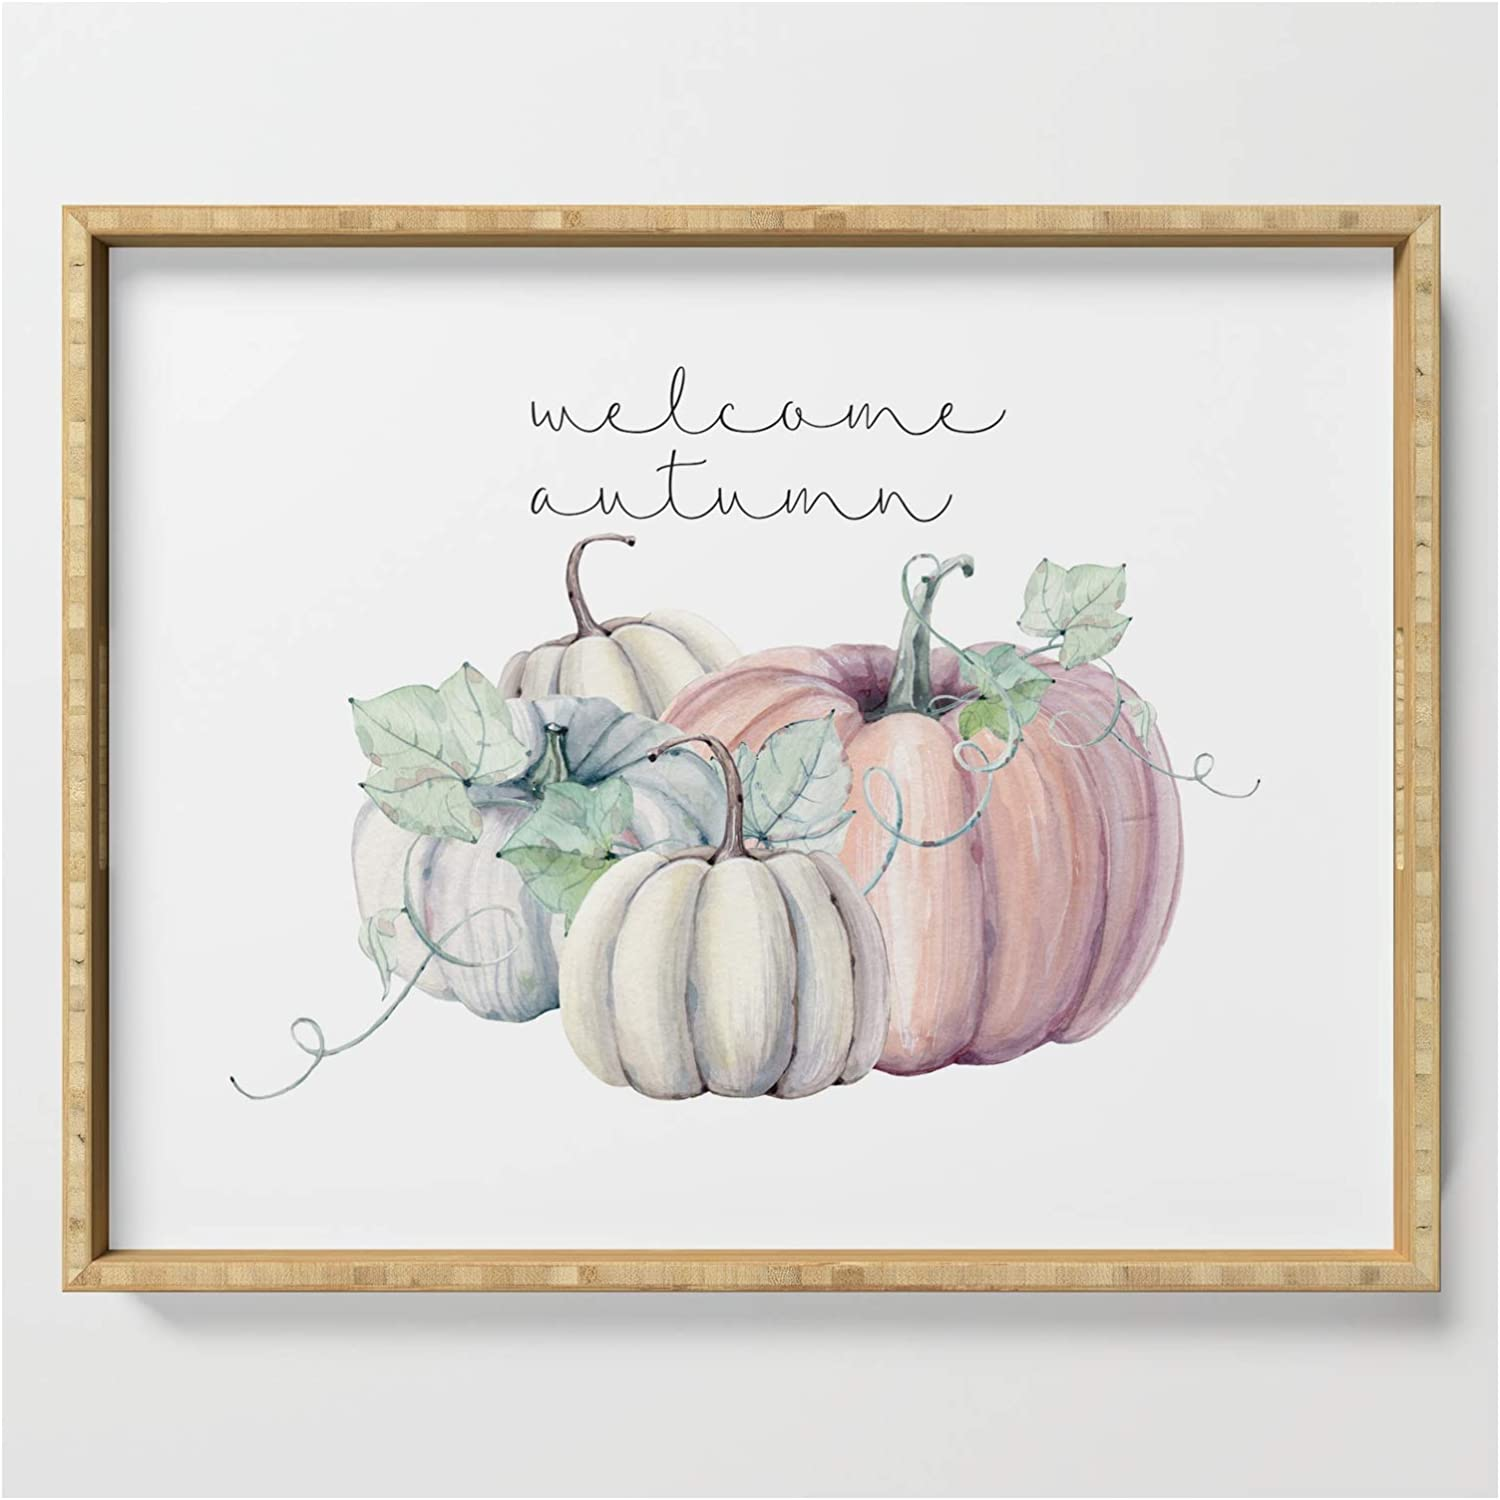 Welcome Autumn Orange Pumpkin Many popular brands by on Photography Sylvia Serv Ranking TOP20 Cook